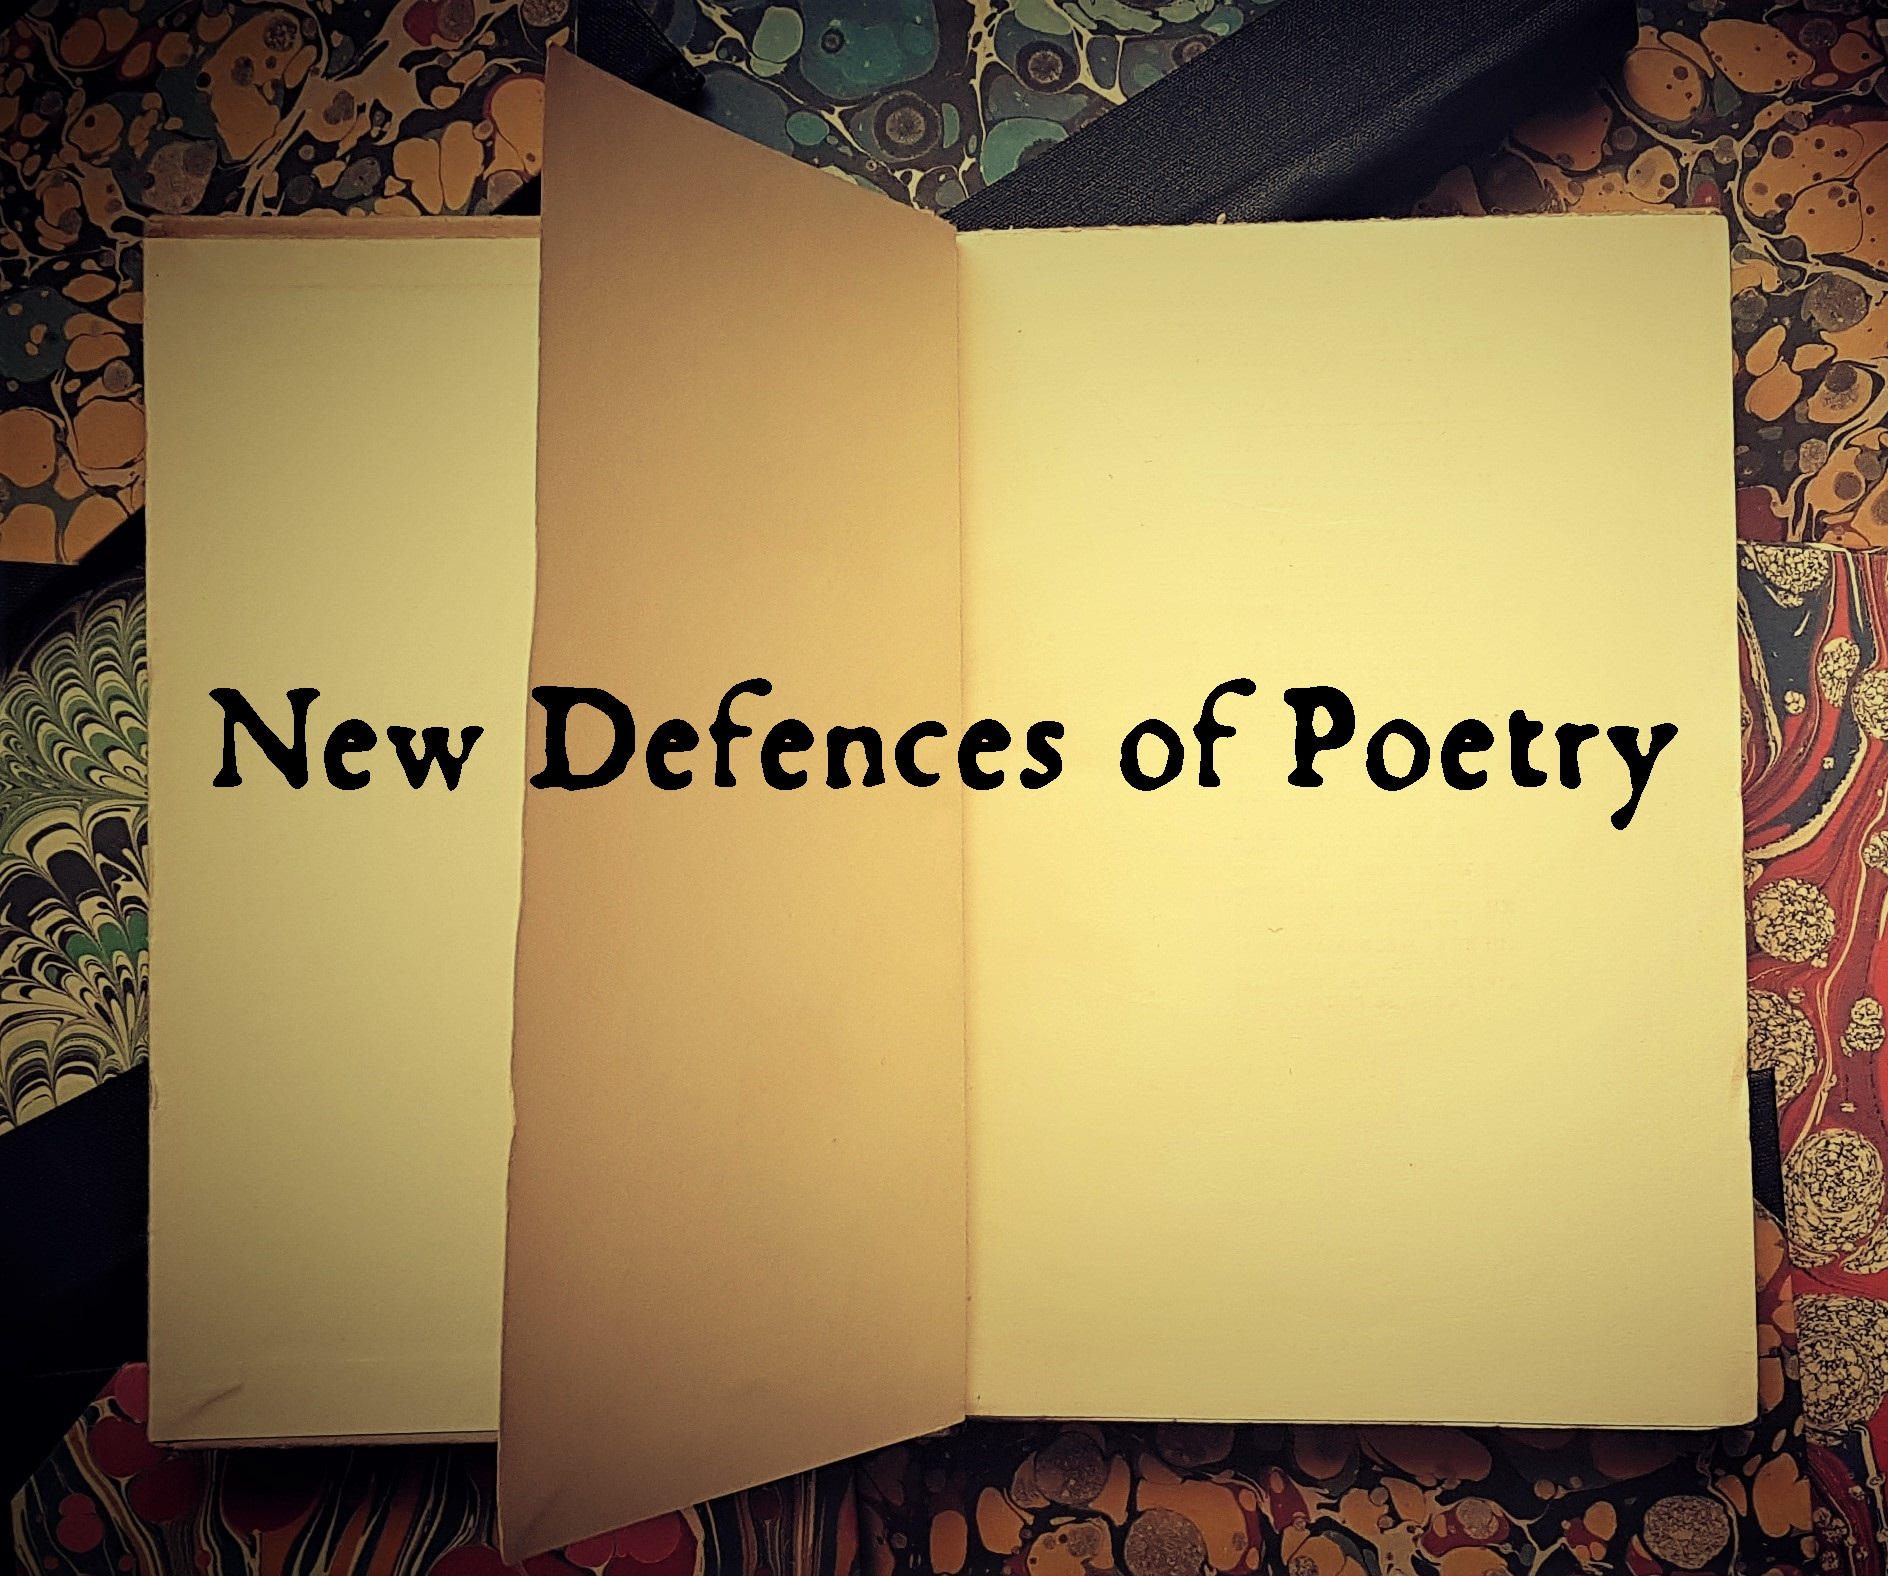 New Defences of Poetry